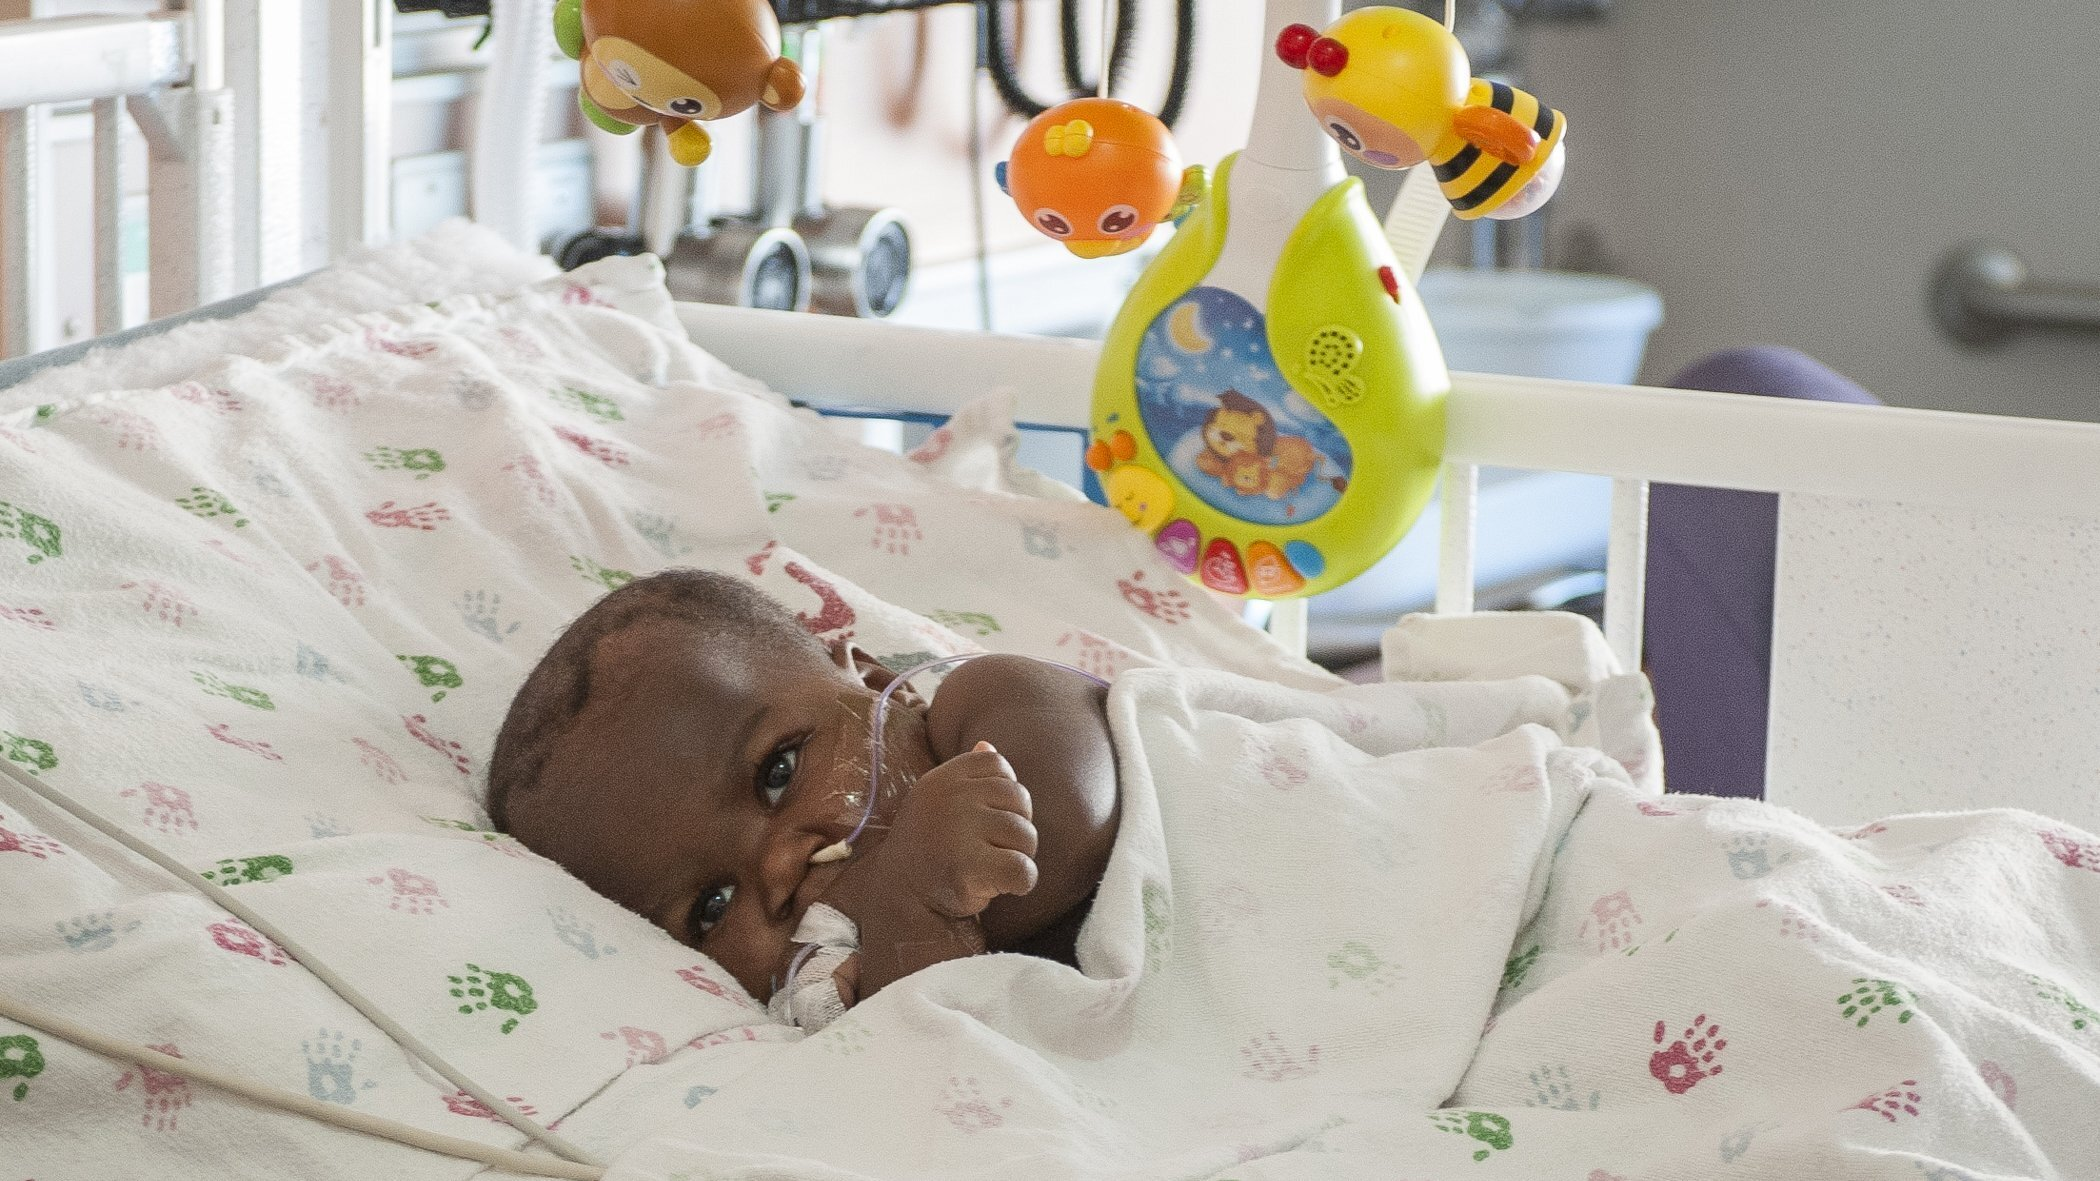 Photos: Risky surgery separates 10-month-old from parasitictwin